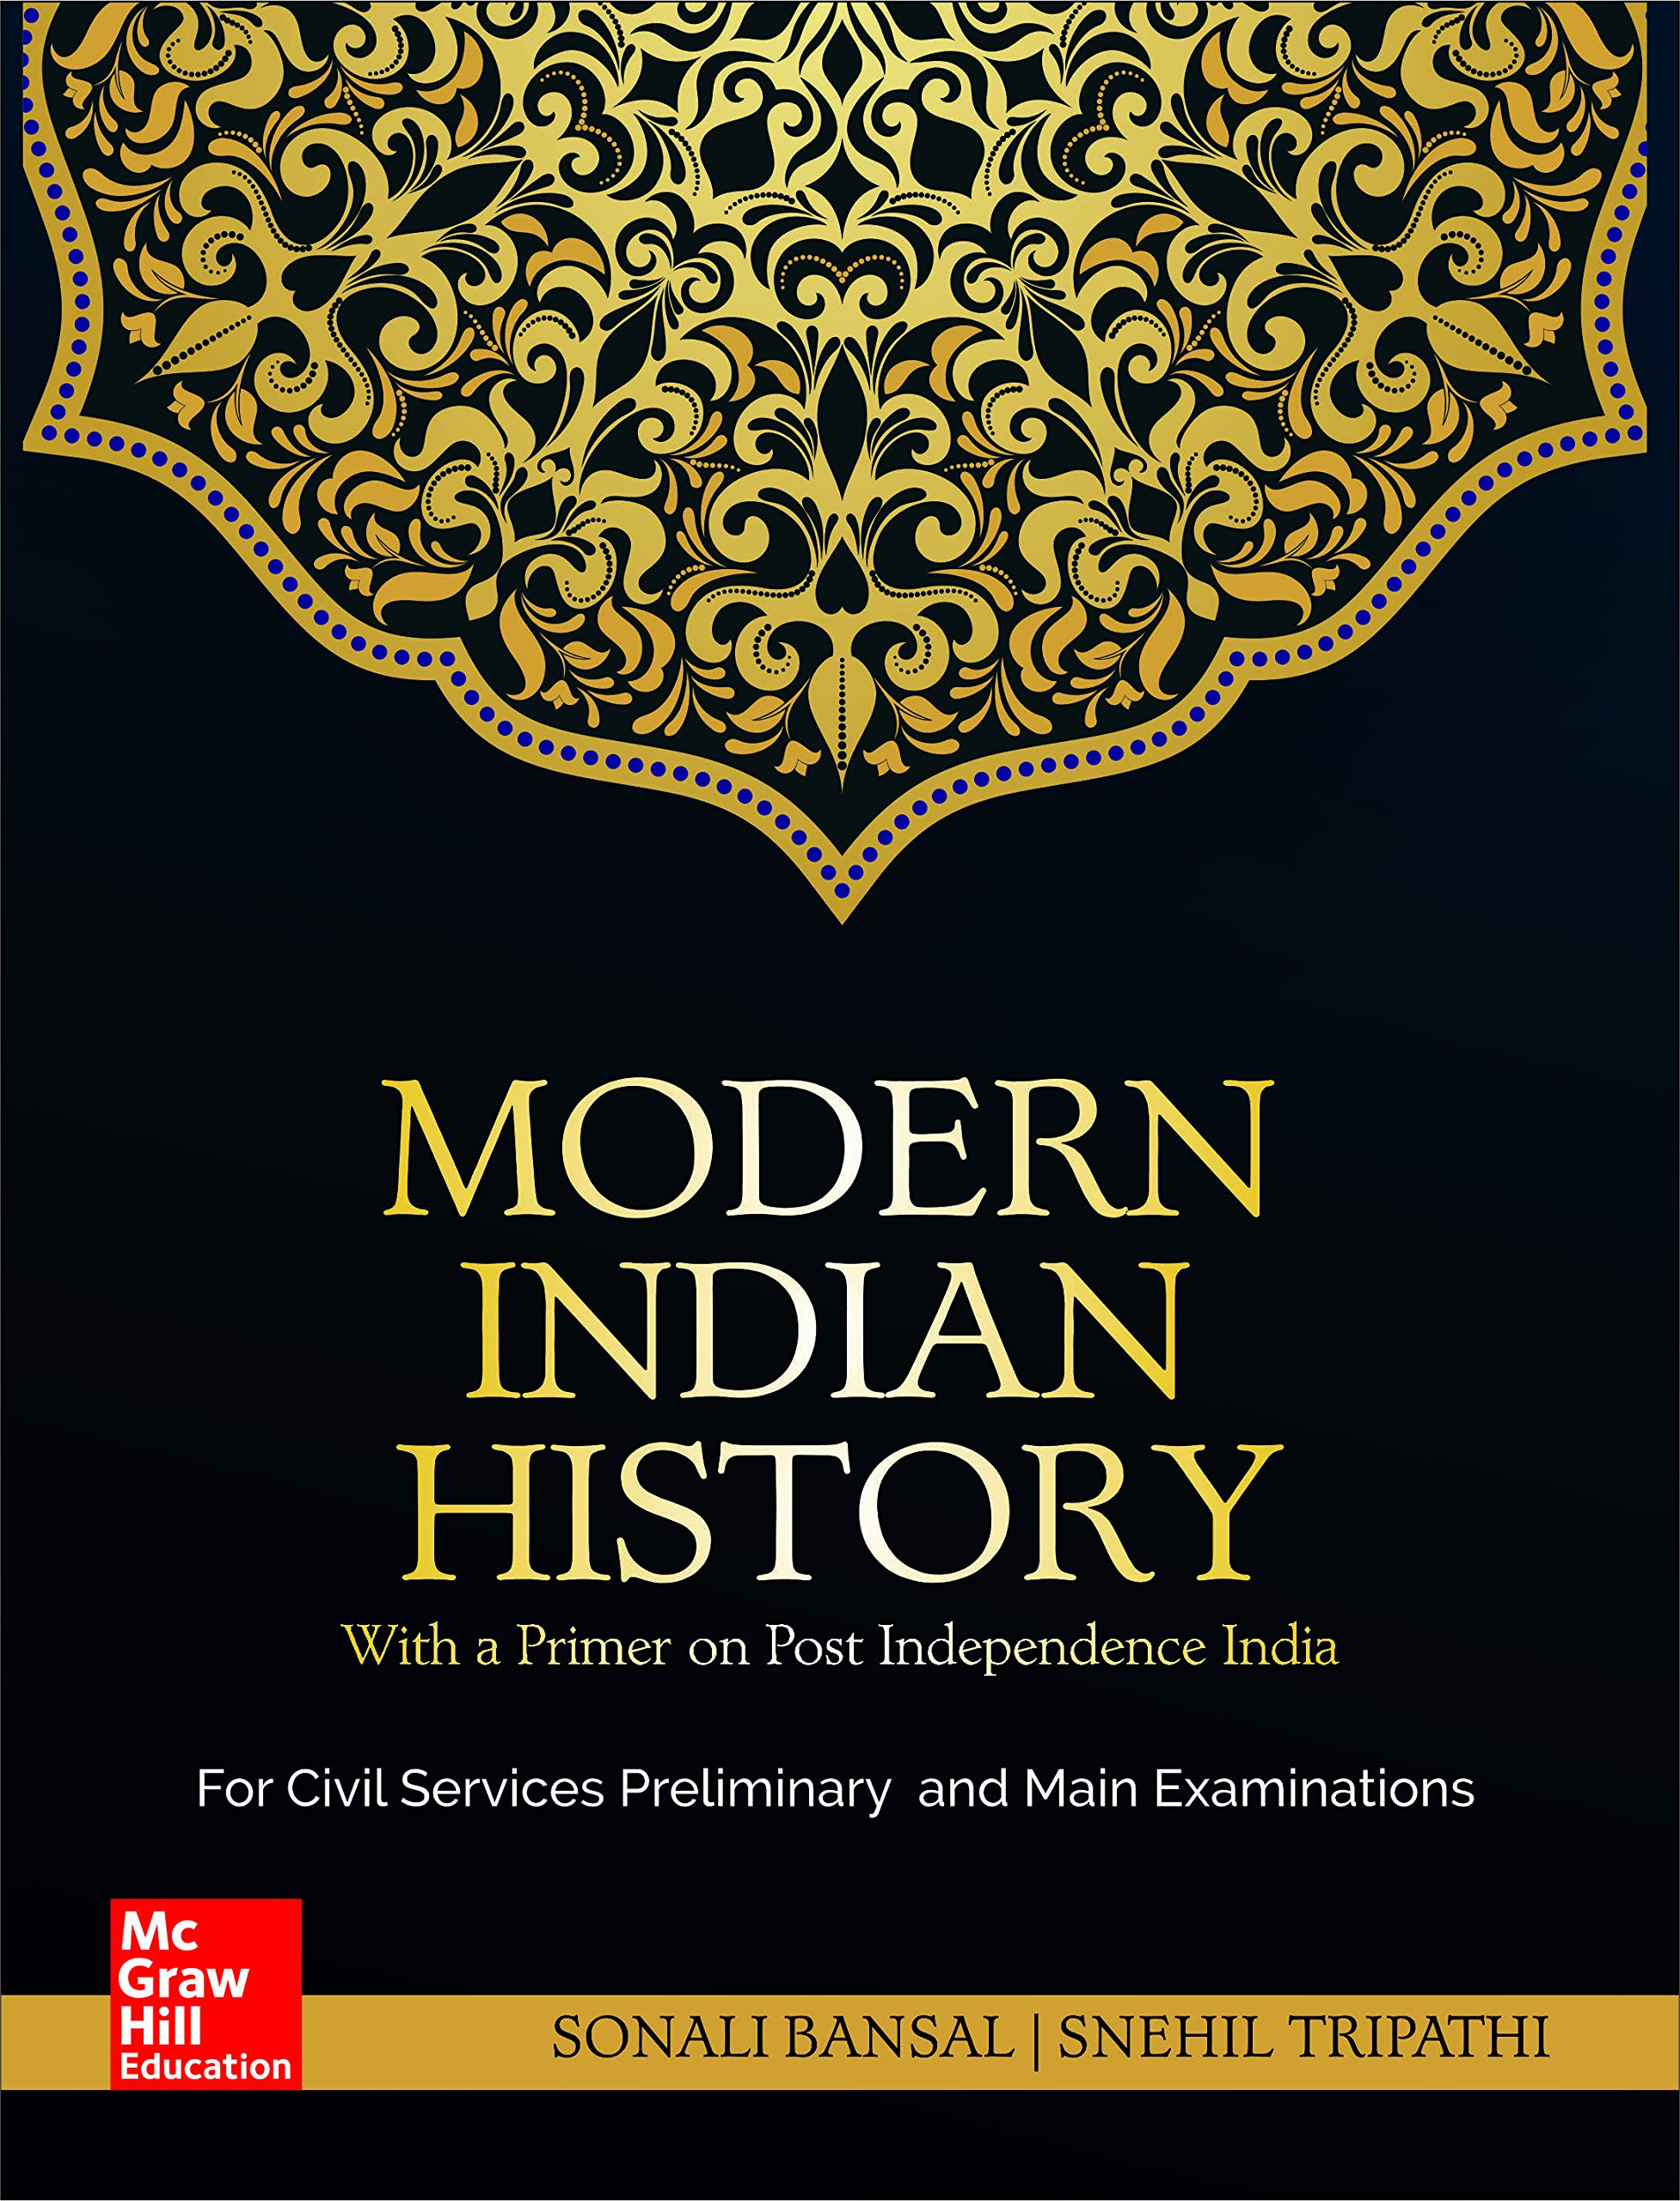 Modern Indian History: For Civil Services Preliminary and Main Examinations Paperback – 6 August 2018